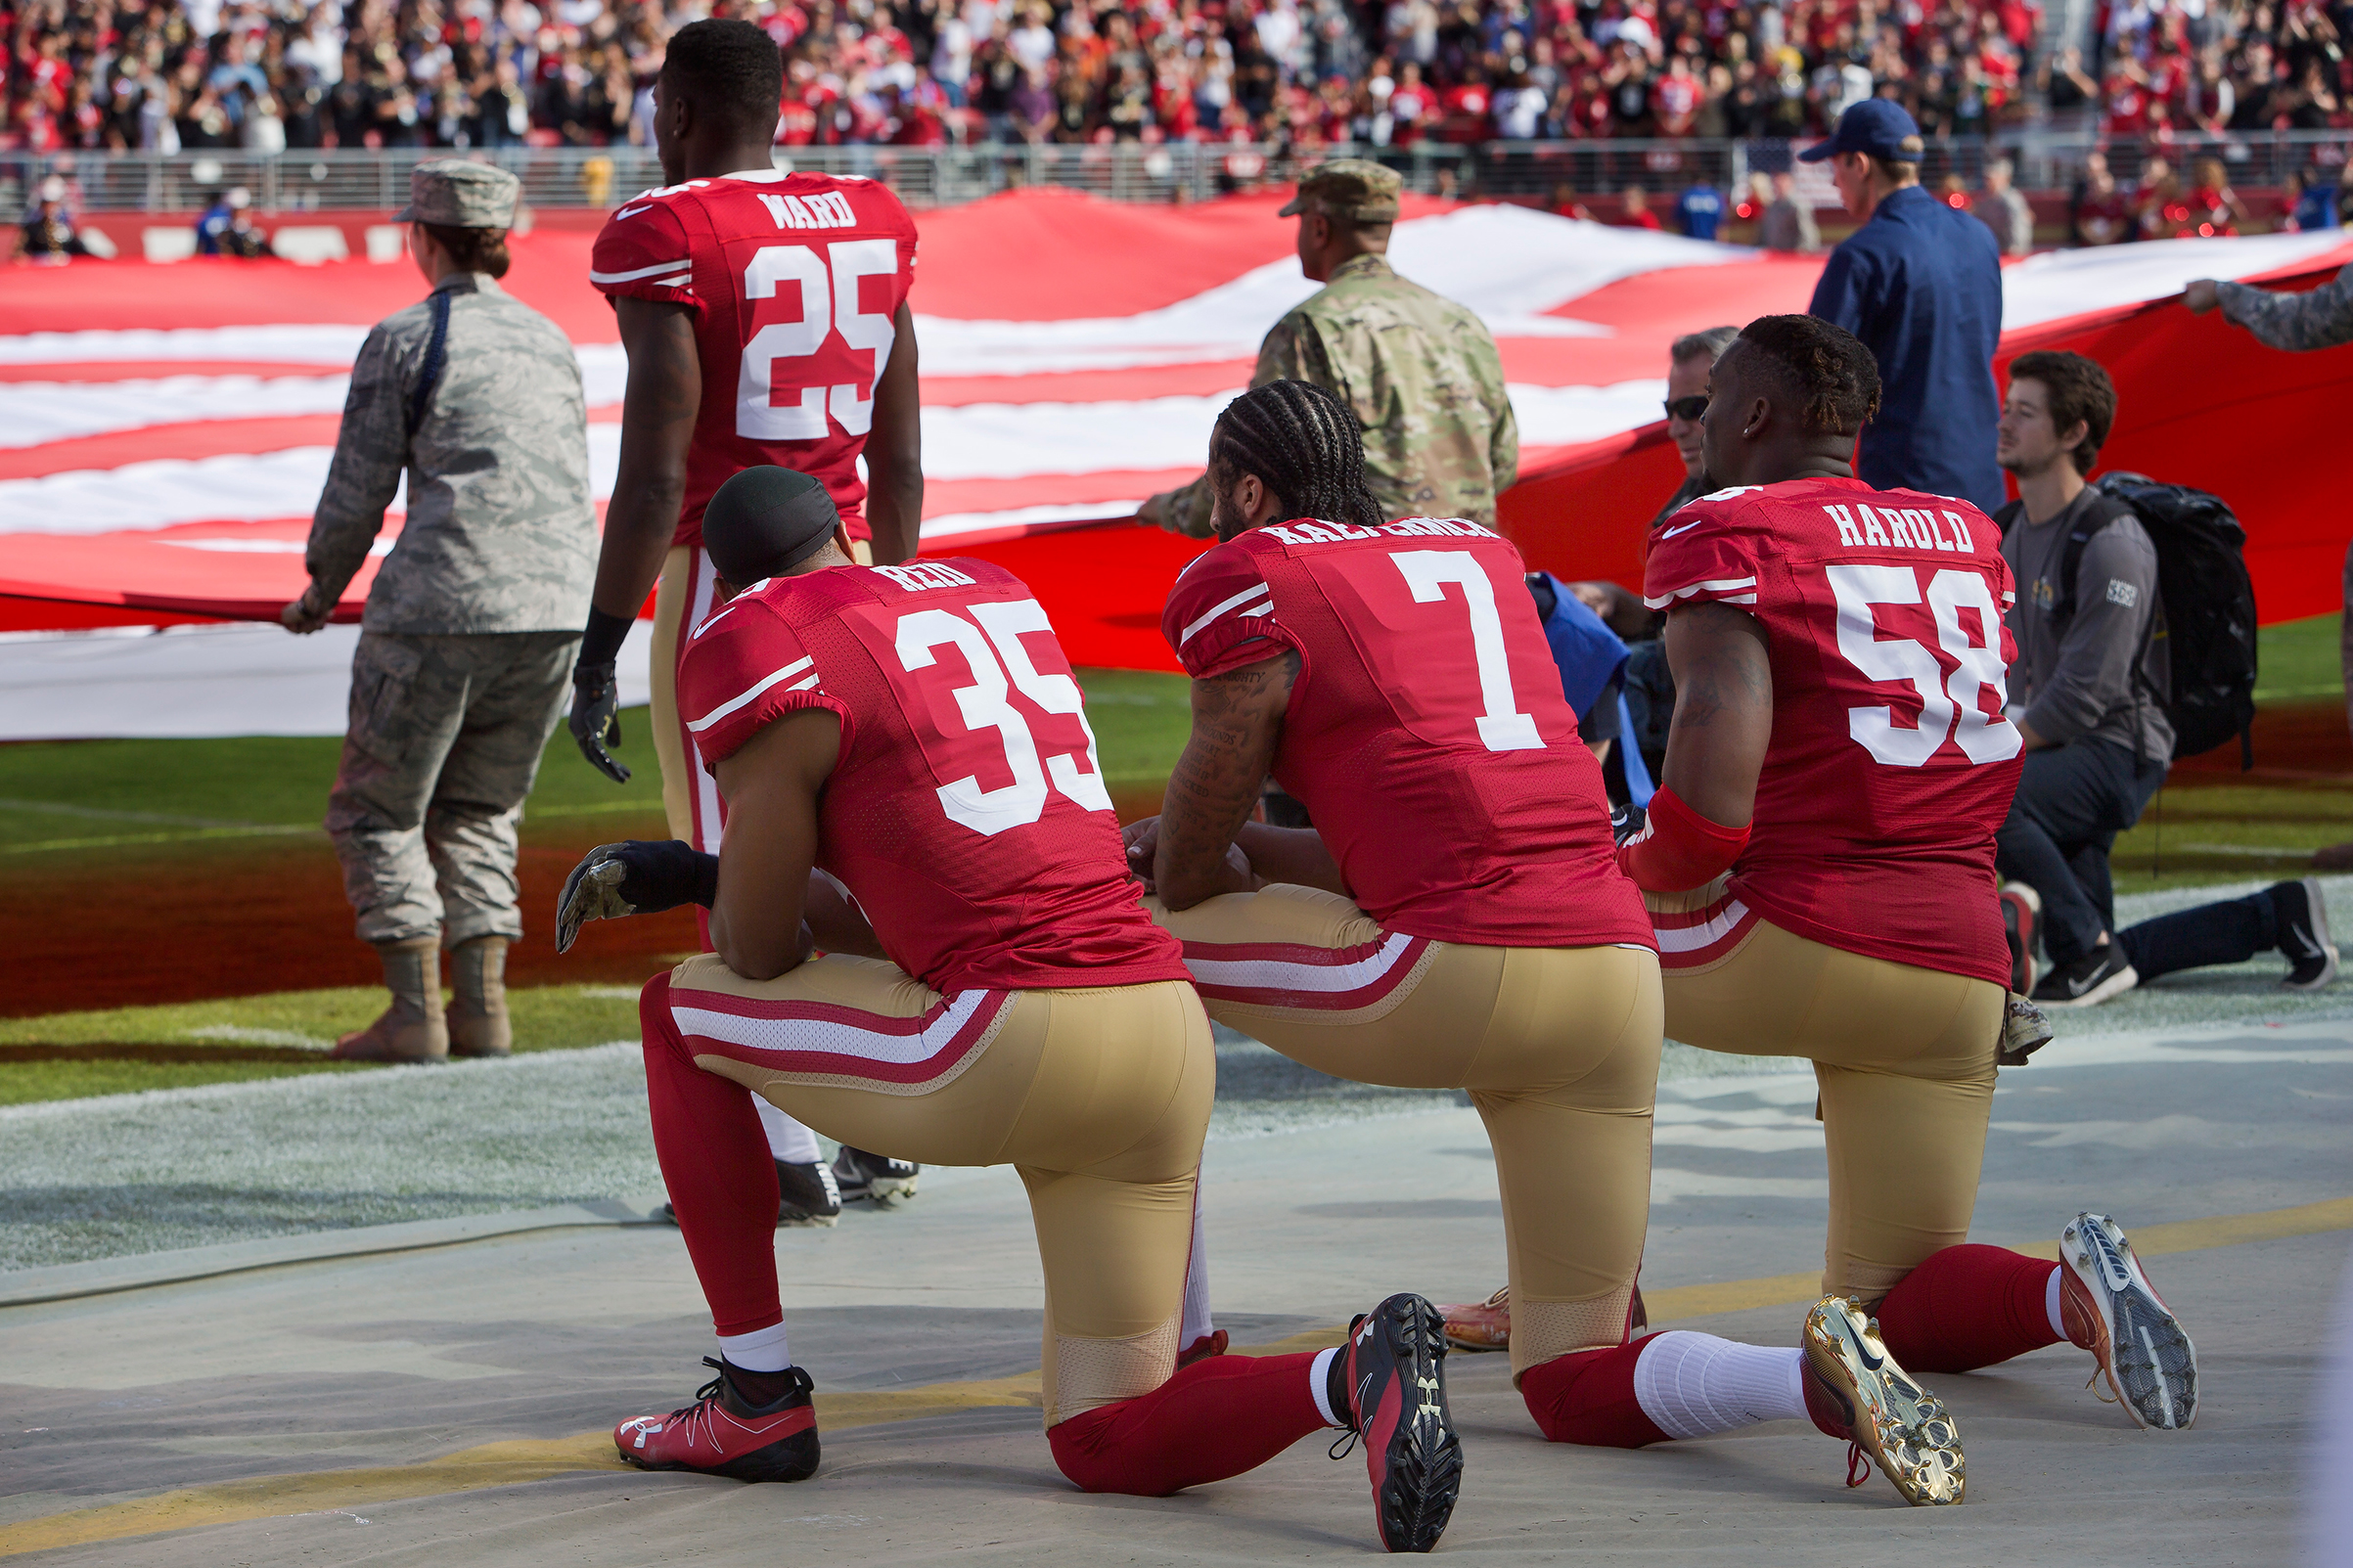 Quarterback Colin Kaepernick #7, safety Eric Reid #35, and linebacker Eli Harold #58 of the San Francisco 49ers kneel before a game against the New Orleans Saints with the U.S. flag unfurled in honor of the armed services on Nov. 6 2016 at Levi's Stadium in Santa Clara, Calif.